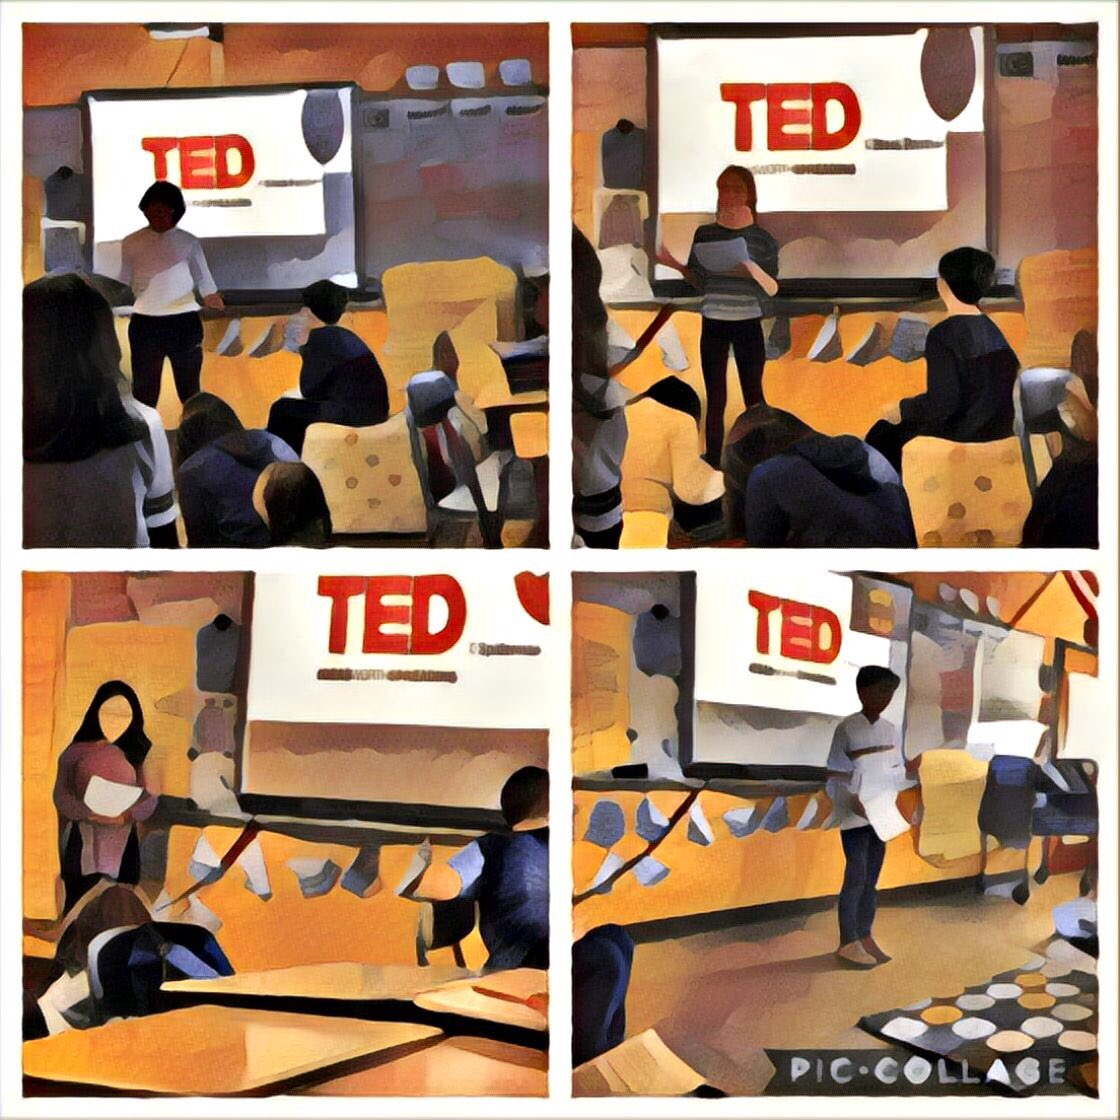 #readingheroes participate in a TED style event in our classroom. They shared their research and their passion. They are empowering, inspiring, beautiful. The future looks good, folks. It looks really good. #middleschool #readersareleaders #smspride #proudteacher